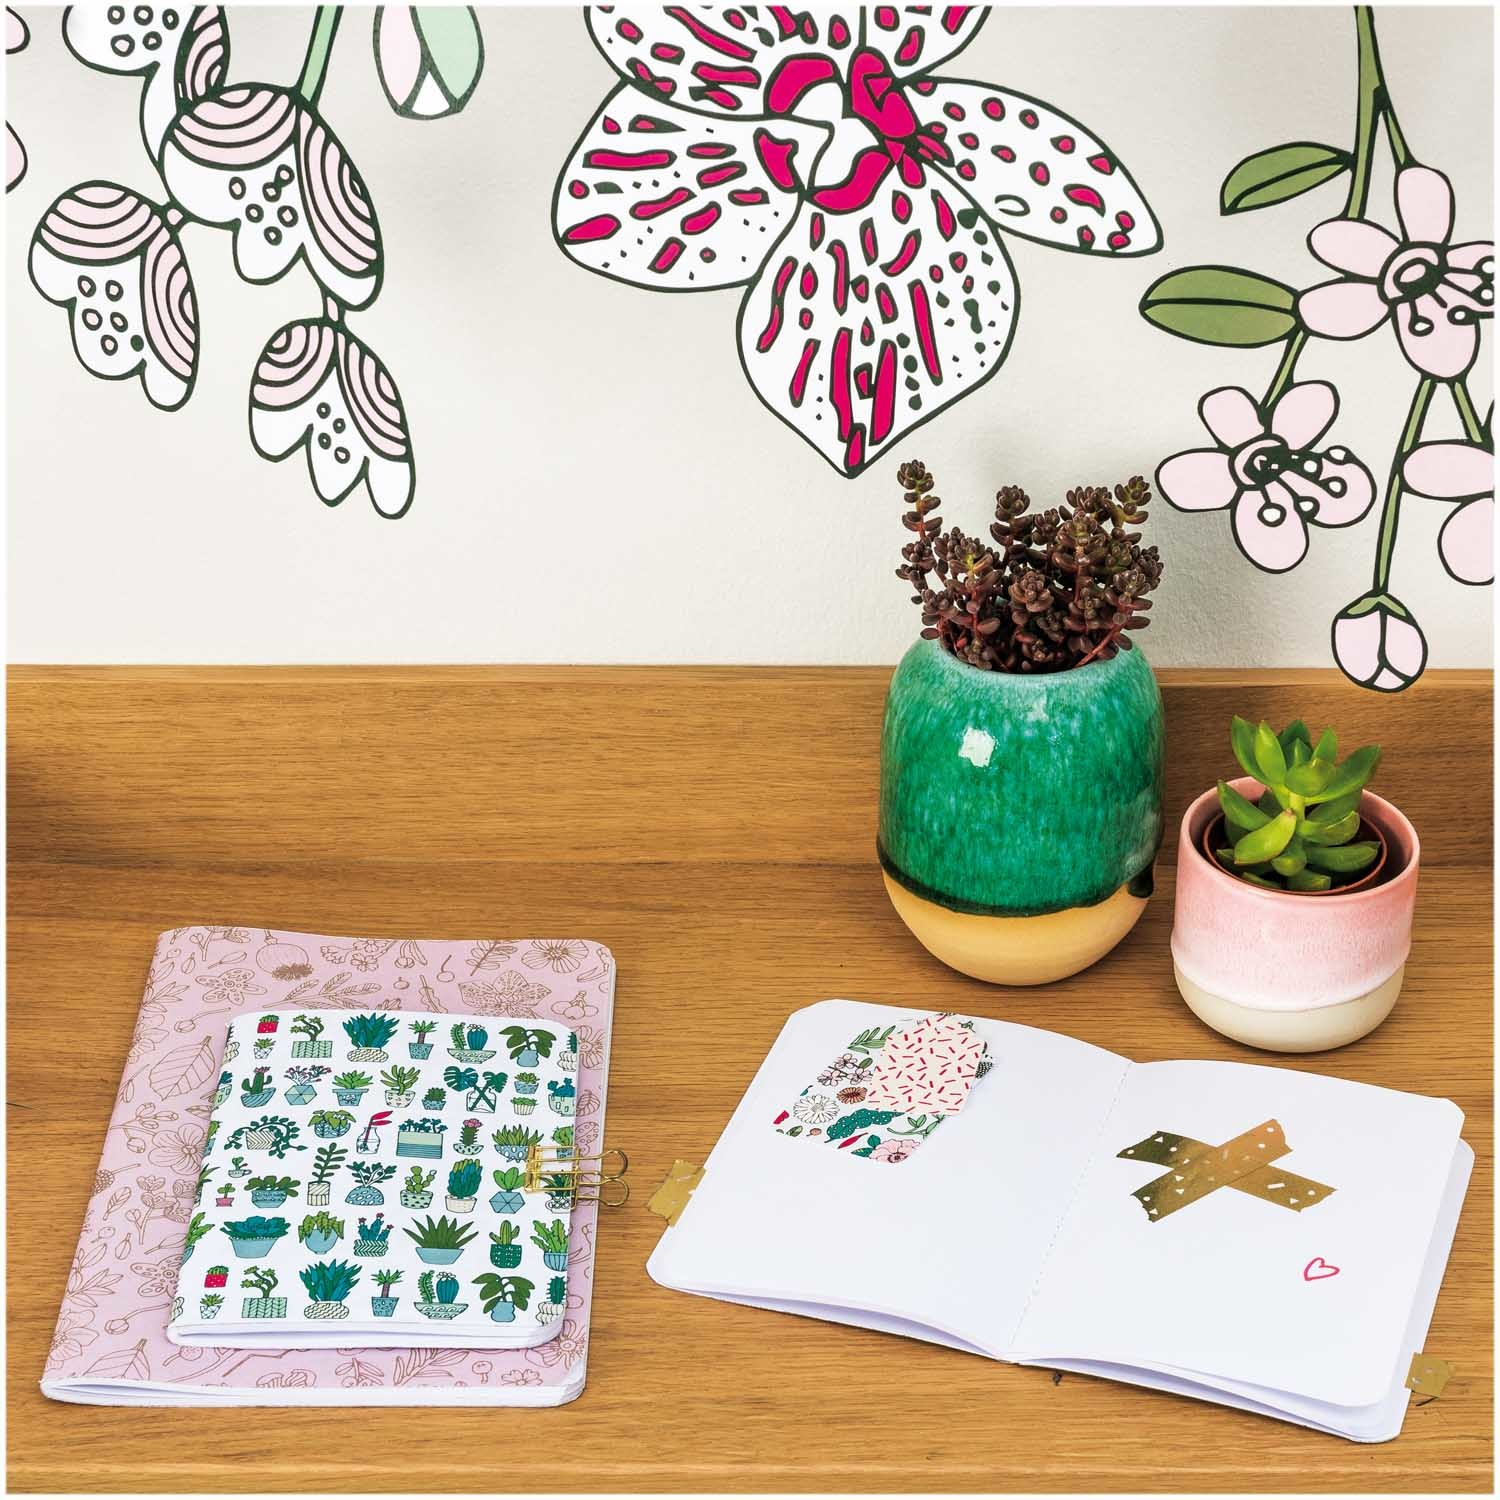 Rico NAY NOTEBOOKS A5, FLOWERS FSC MIX 2 STK, 40 PAGES